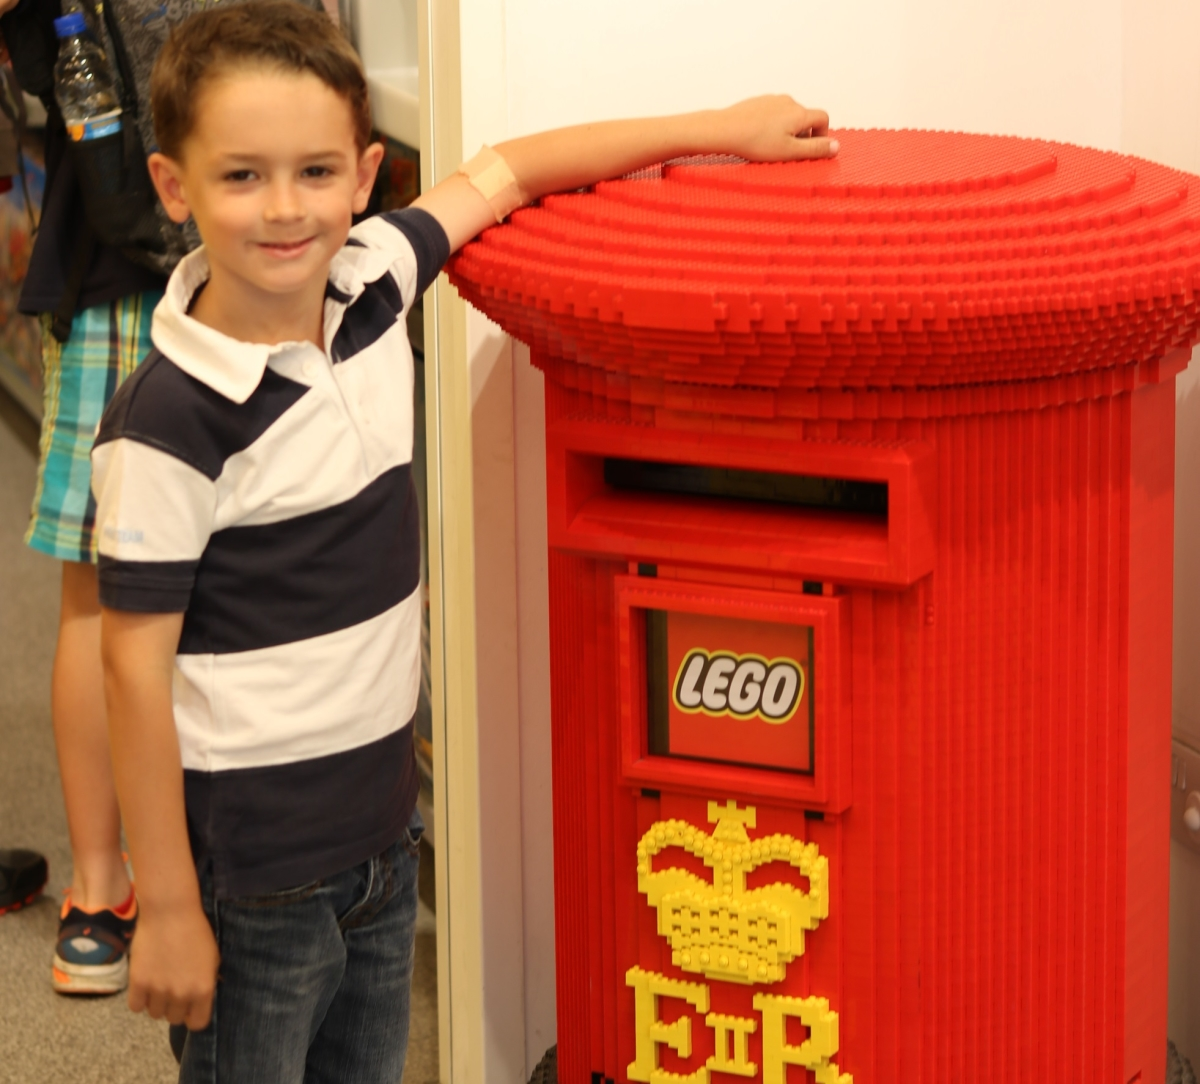 Post Office Lego. barbarahernandez.es